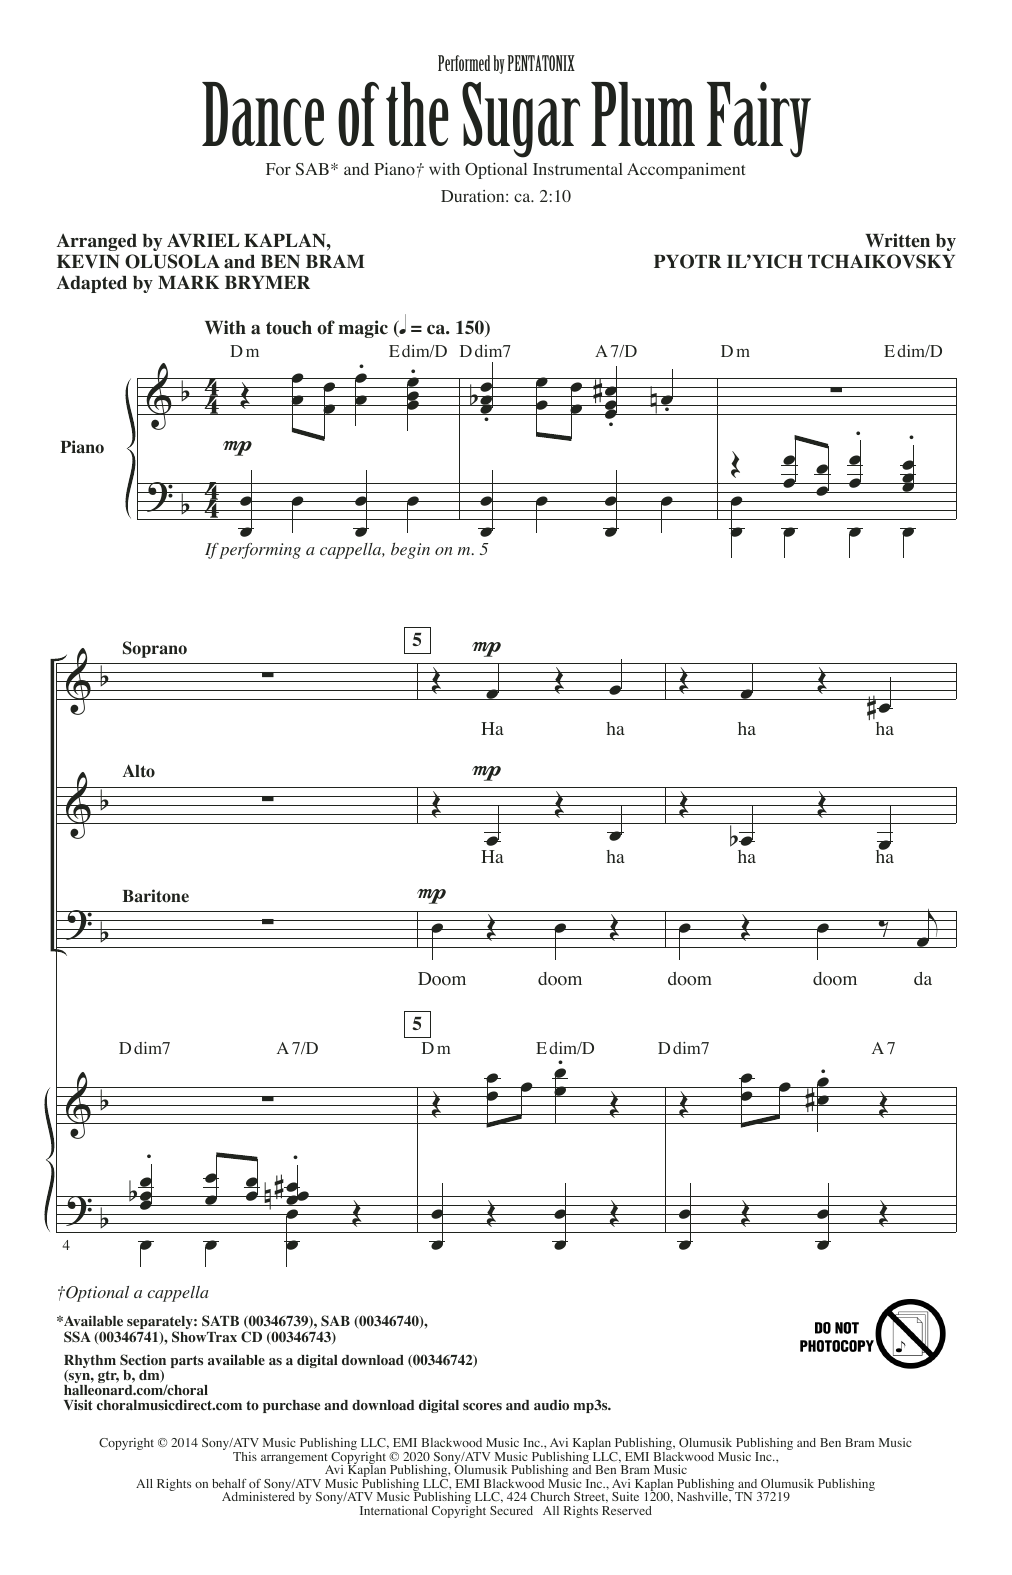 Pentatonix Dance Of The Sugar Plum Fairy (arr. Mark Brymer) sheet music notes and chords. Download Printable PDF.